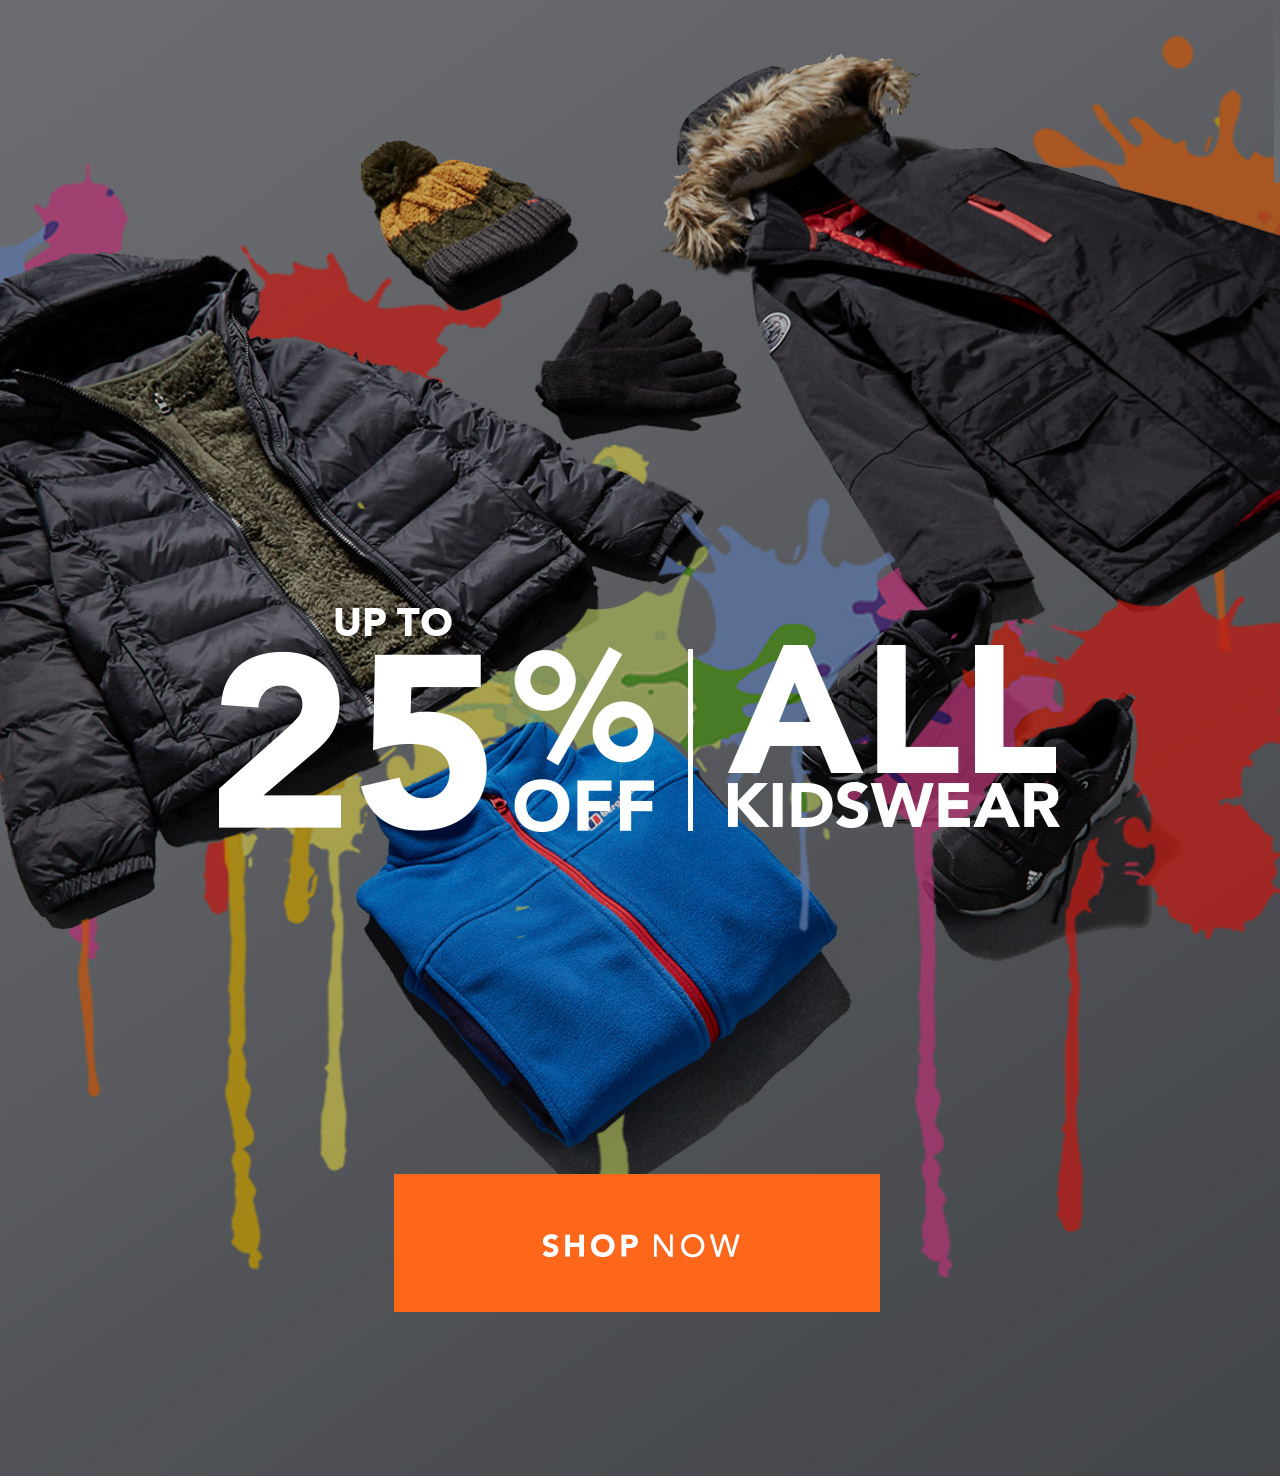 Up To 25% Off Kidswear